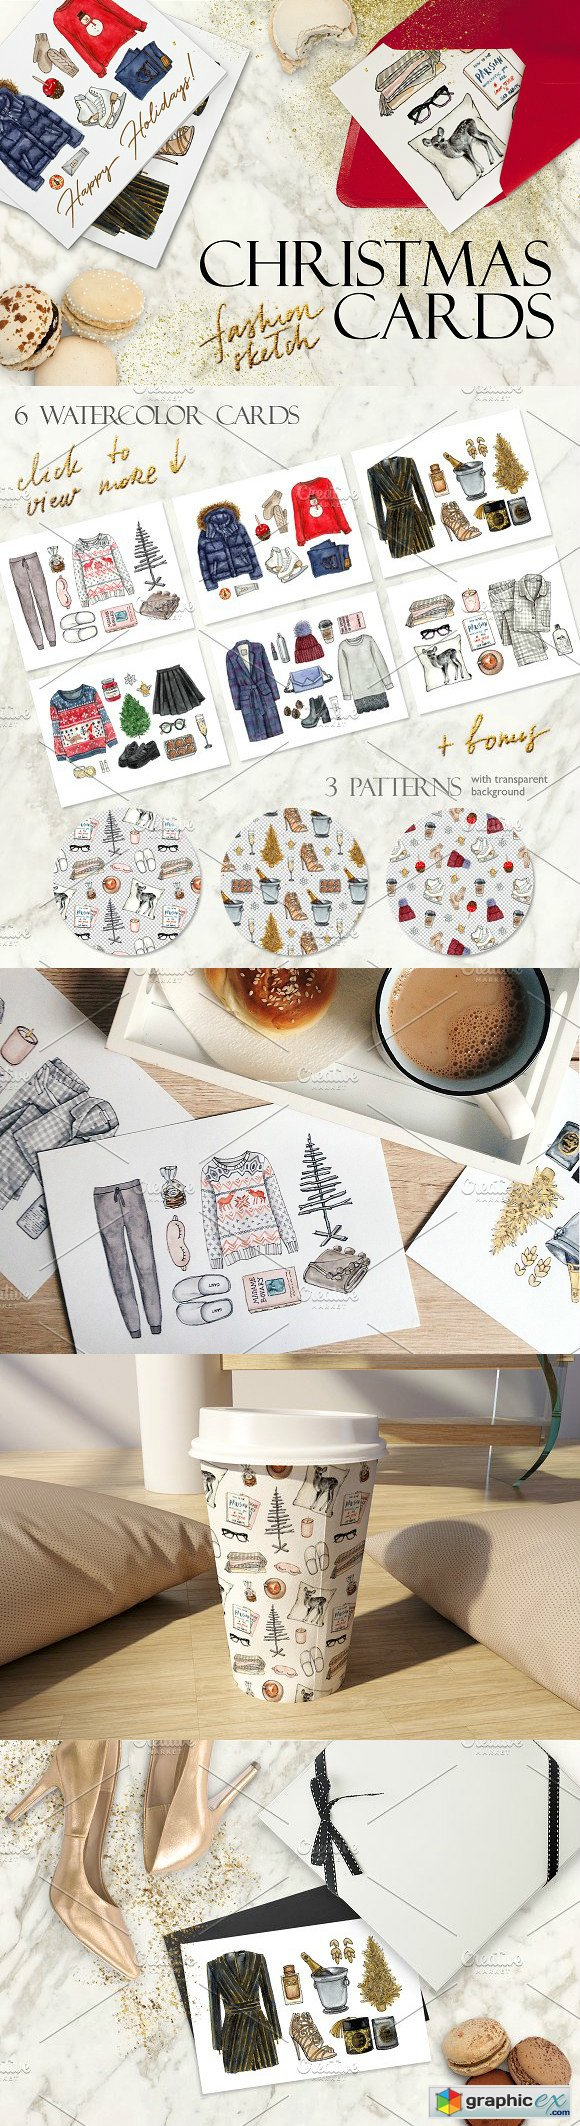 Christmas fashion sketch cards